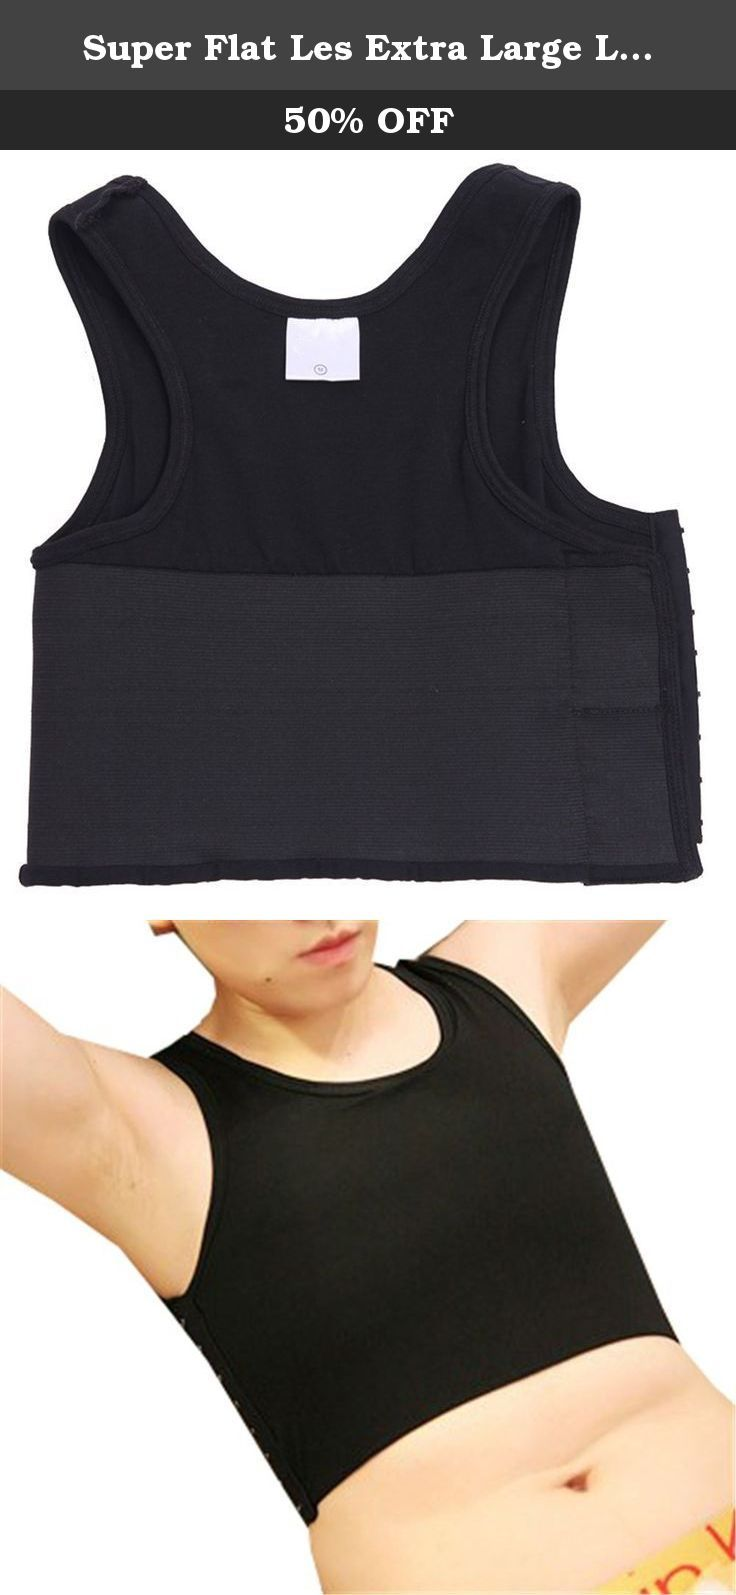 Super Flat Les Extra Large Lesbian Chest Binders Tomboy Compression 3 Rows Clasp (M, black). Size S Chest:28.7-31 inch;Weight:88-104 pound; Size M Chest:31-33 inch;Weight:104-115 pound; Size L Chest: 33-35 inch;Weight:115-132 pound; Size XL Chest: 35-37.8 inch;Weight:132-149 pound; Size XXL Chest: 37.8-40.2 inch;Weight:149-160 pound.